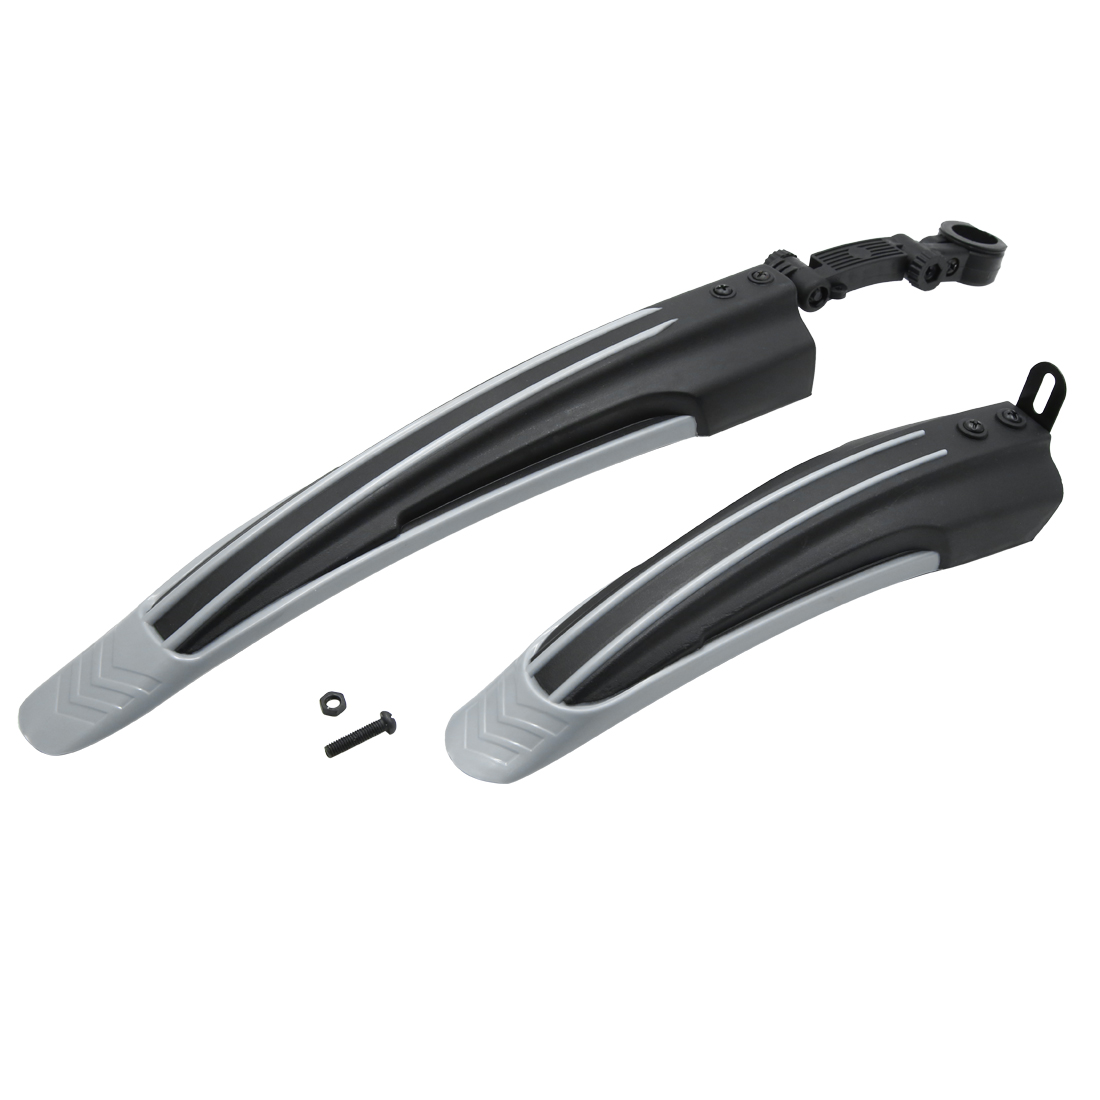 Black Gray Plastic Cycling Bike Bicycle Rear Front Mud Guard Mudguard Fenders Set